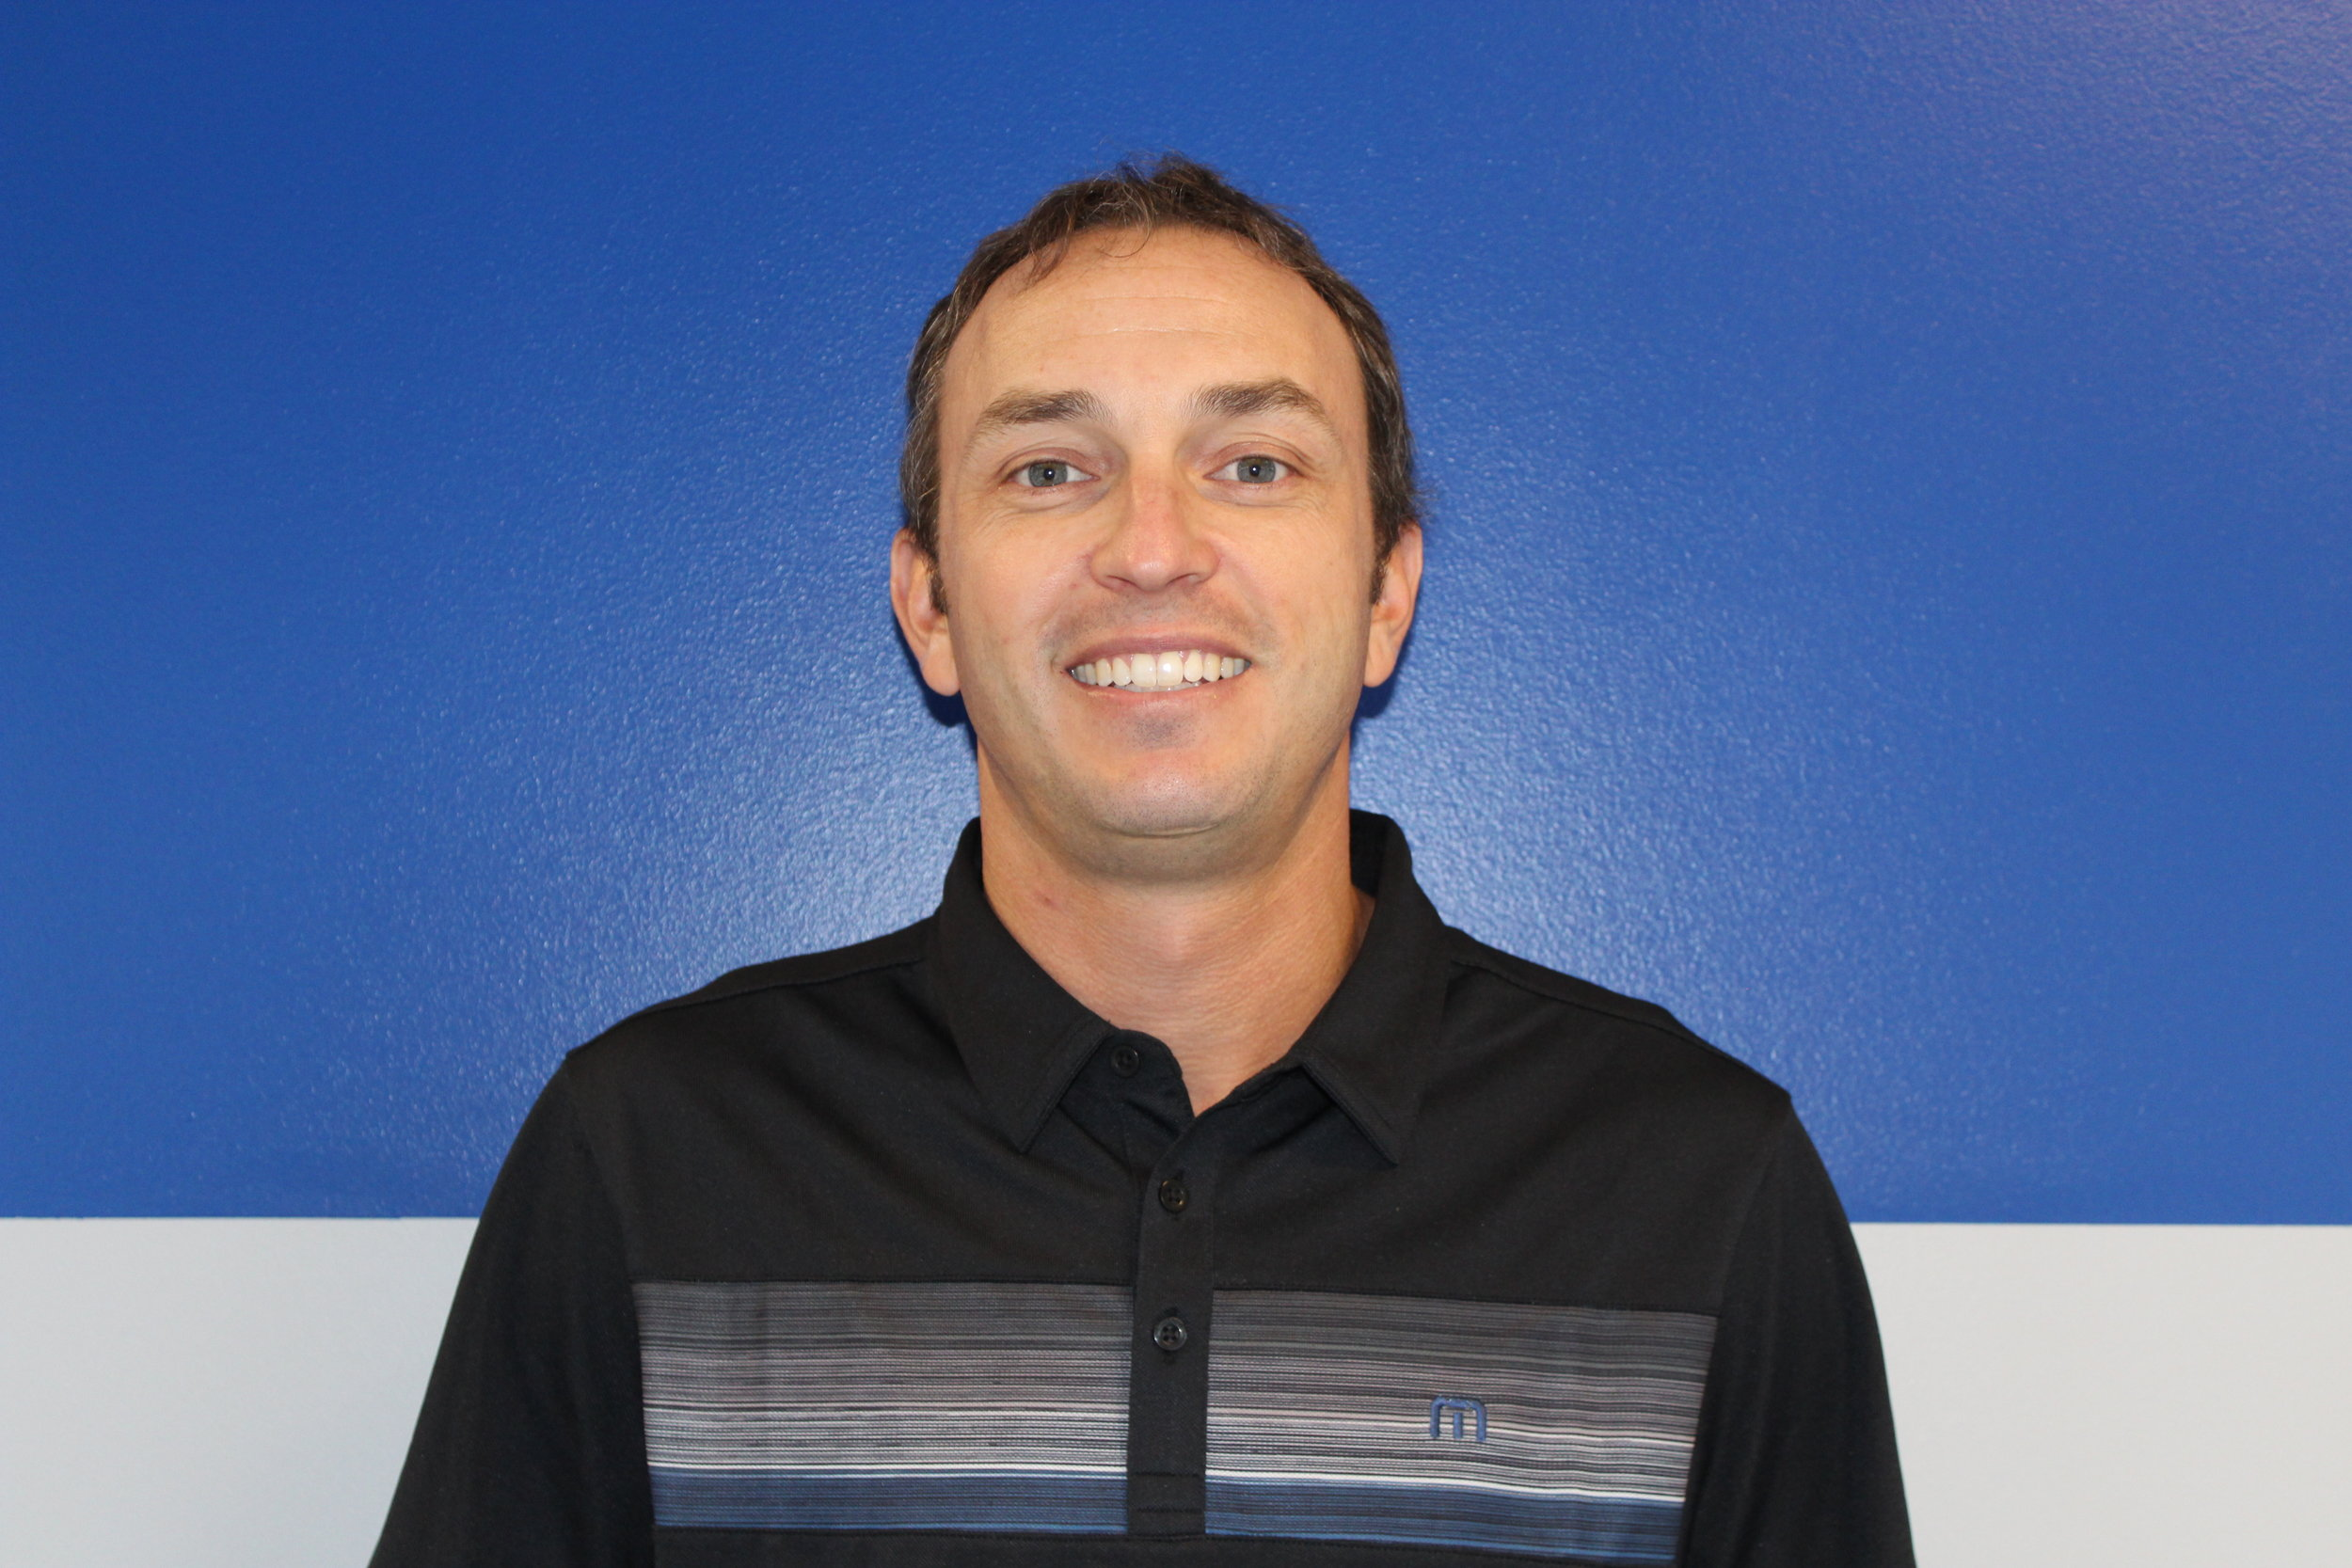 Anthony Bruns - General Manager - Anthony has been with Starr since 2015 as General Manager and holds an…READ MORE